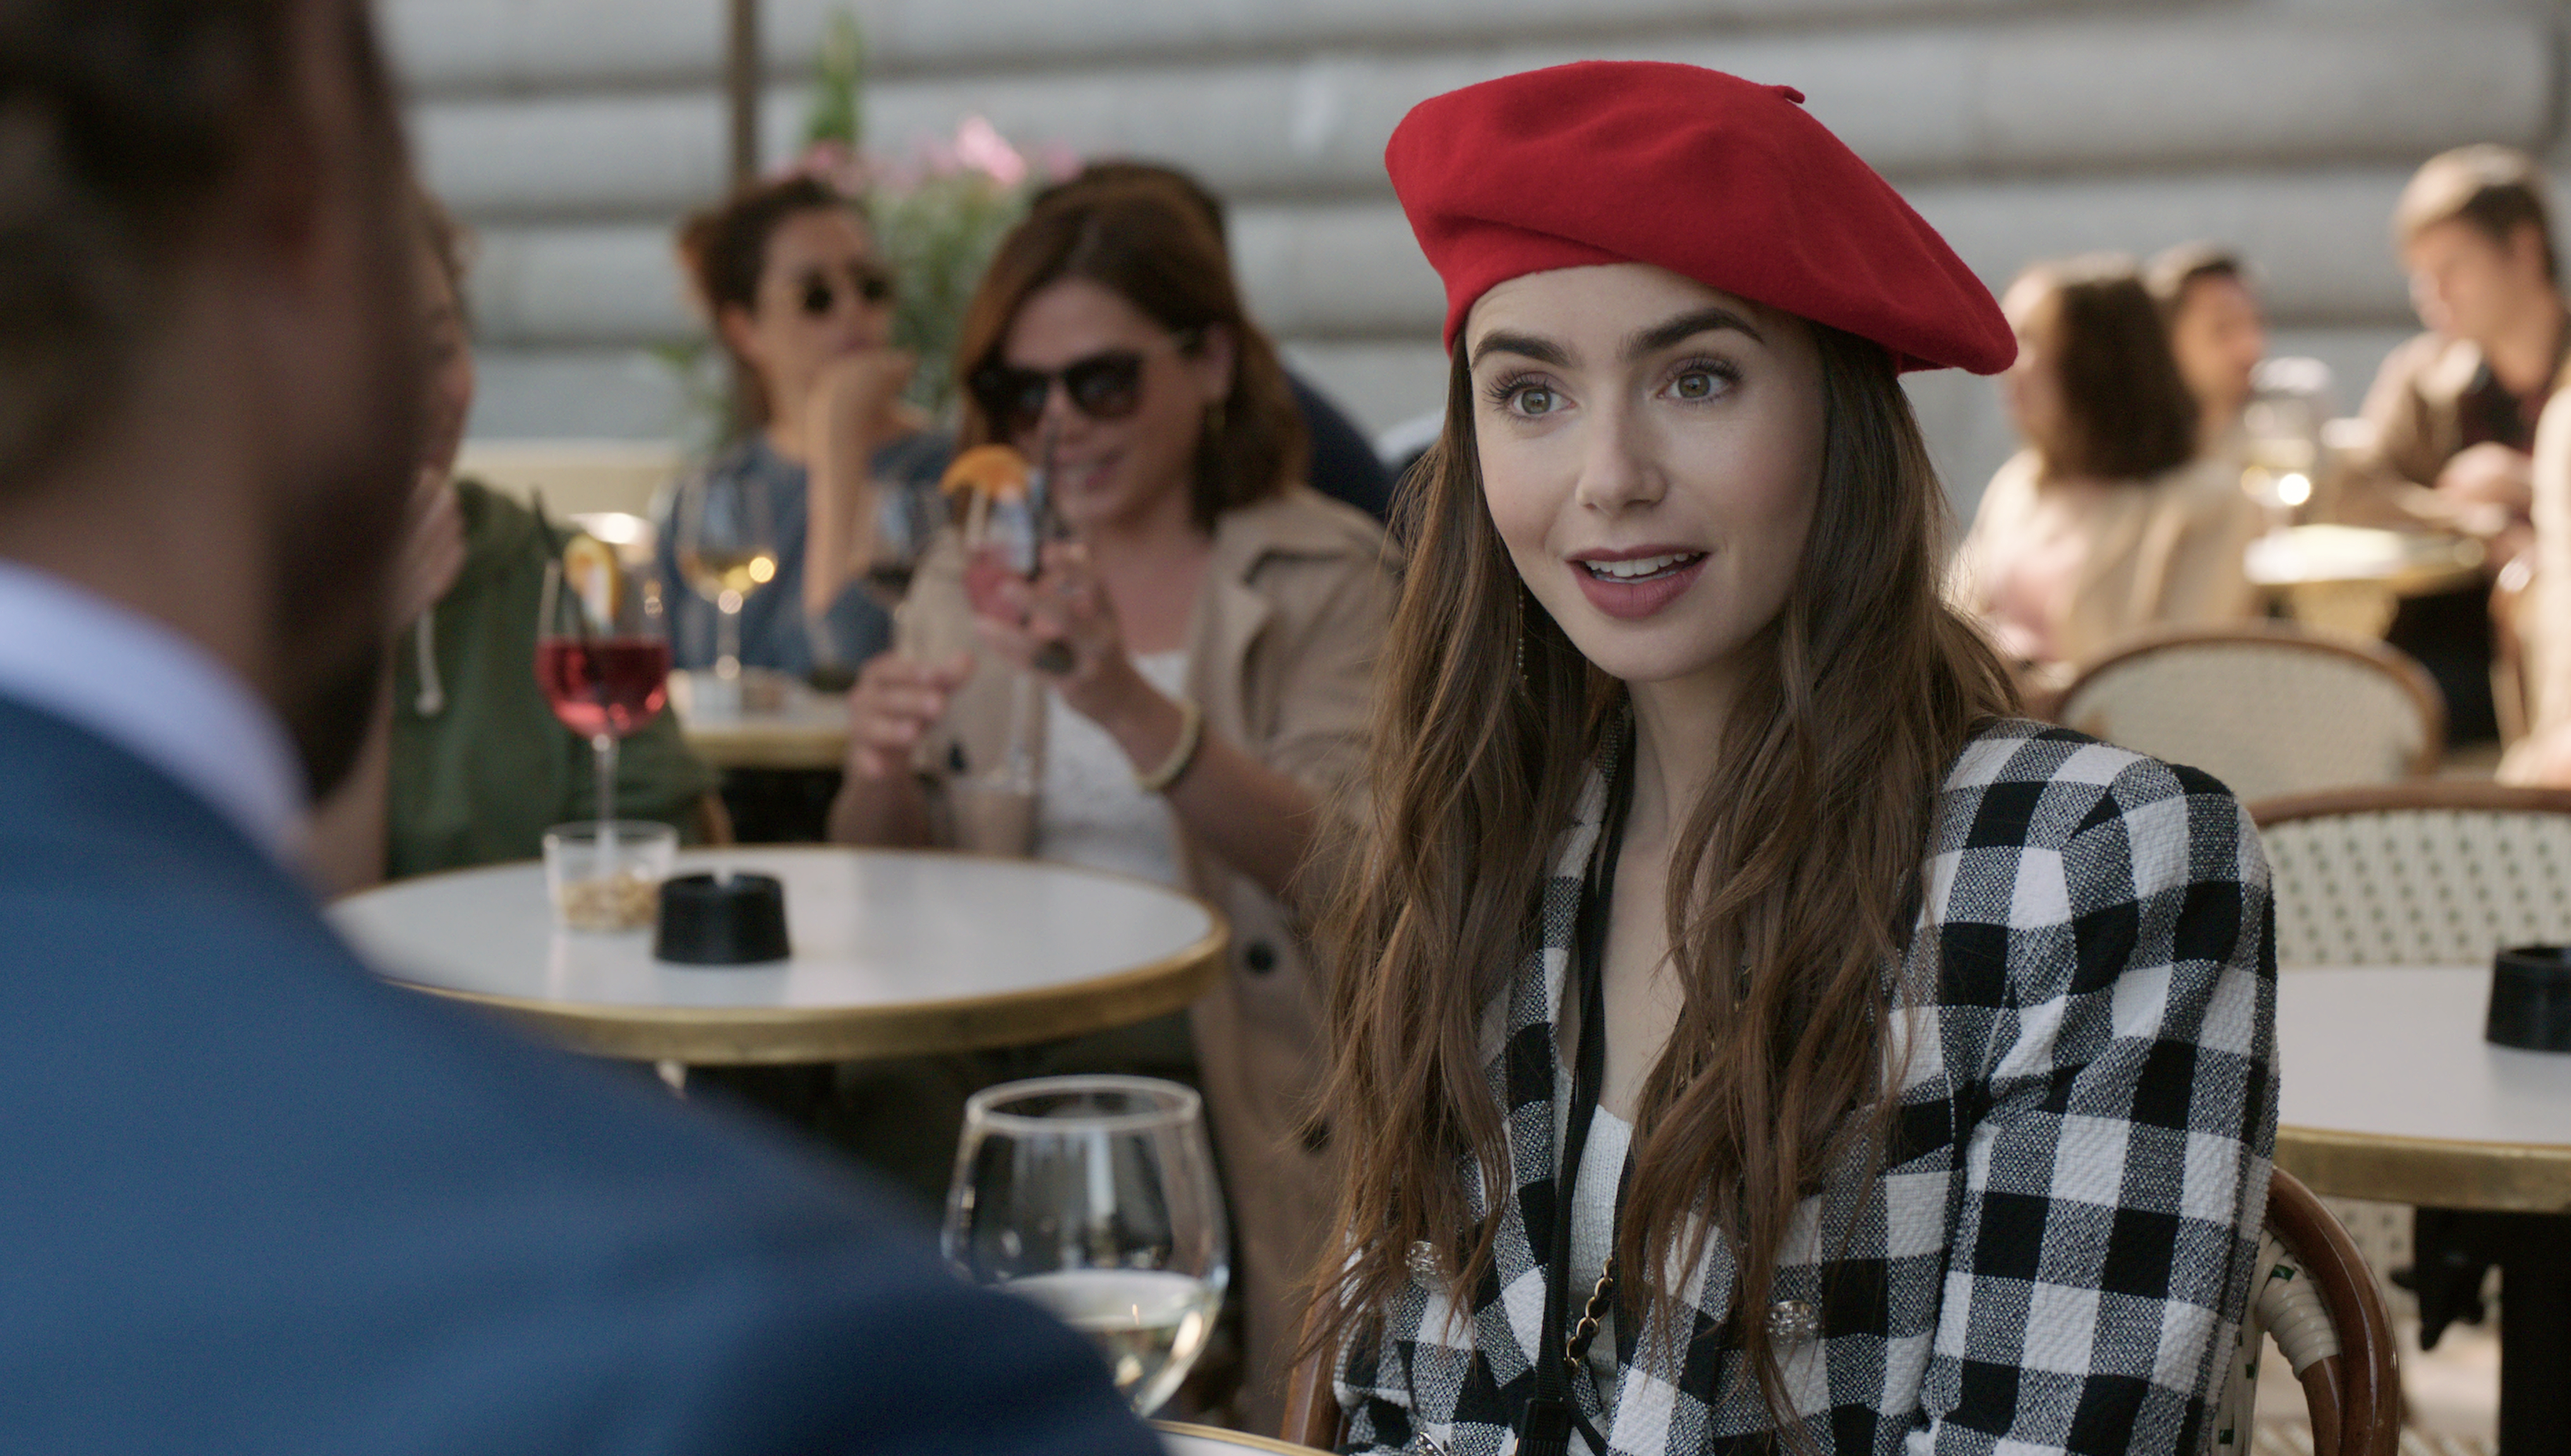 A young white woman with long brown hair wears a red beret and black-and-white plaid blazer while sitting at a crowded Paris sidewalk cafe with a glass of white wine.